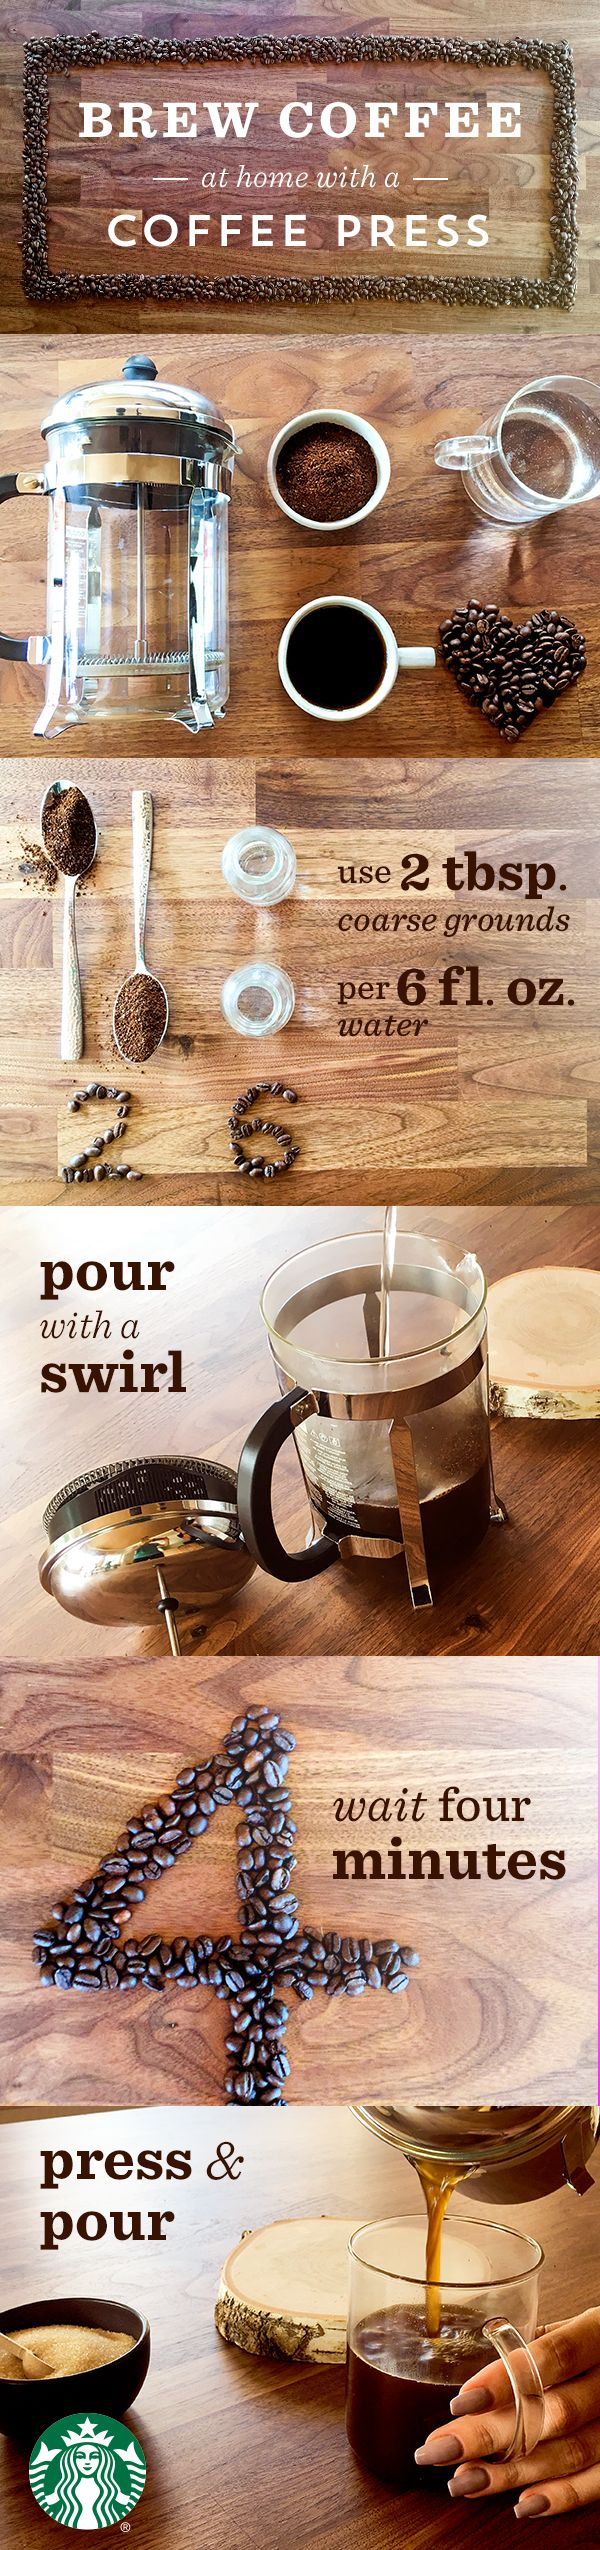 "Brewing with a Coffee Press is easy. Start by adding 2 tbsp of coarsely ground coffee per 6 oz of water. Pour water just off the boil over the grounds in a swirling motion, allowing them to ""bloom"" (bubble). After about 4 minutes, slowly press down the plunger. Pour into your favorite mug and enjoy."